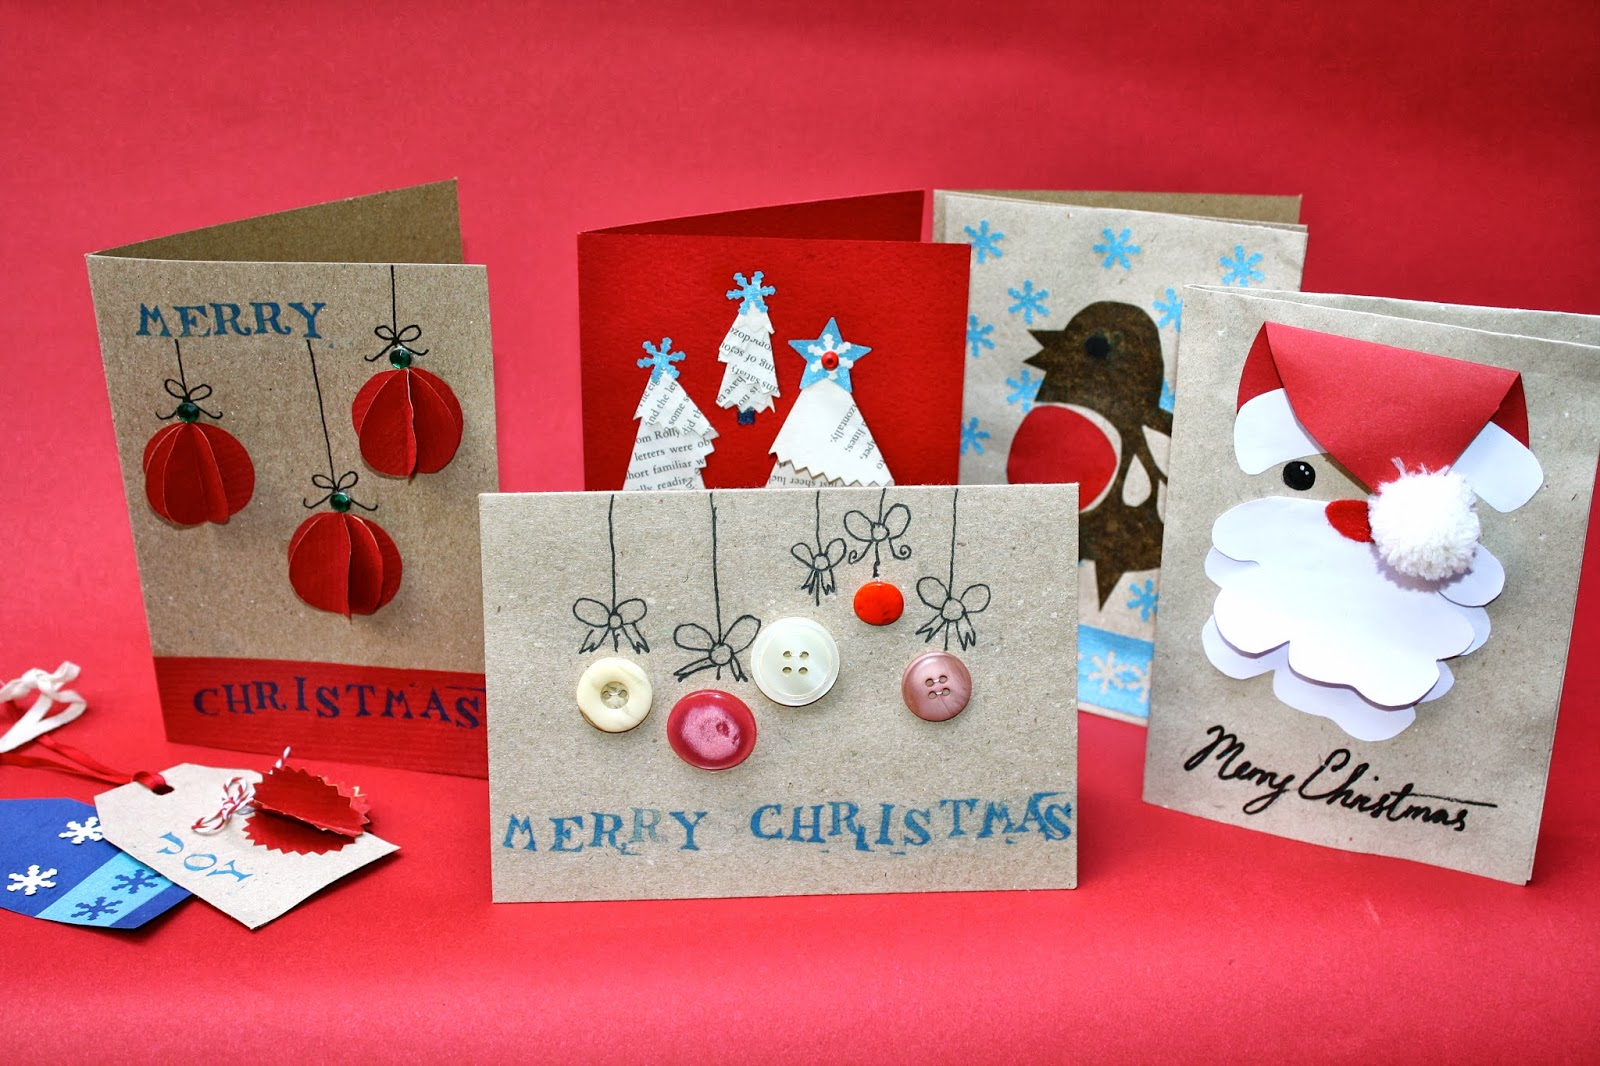 Are Christmas Cards Being Replaced As Social Media Develops?